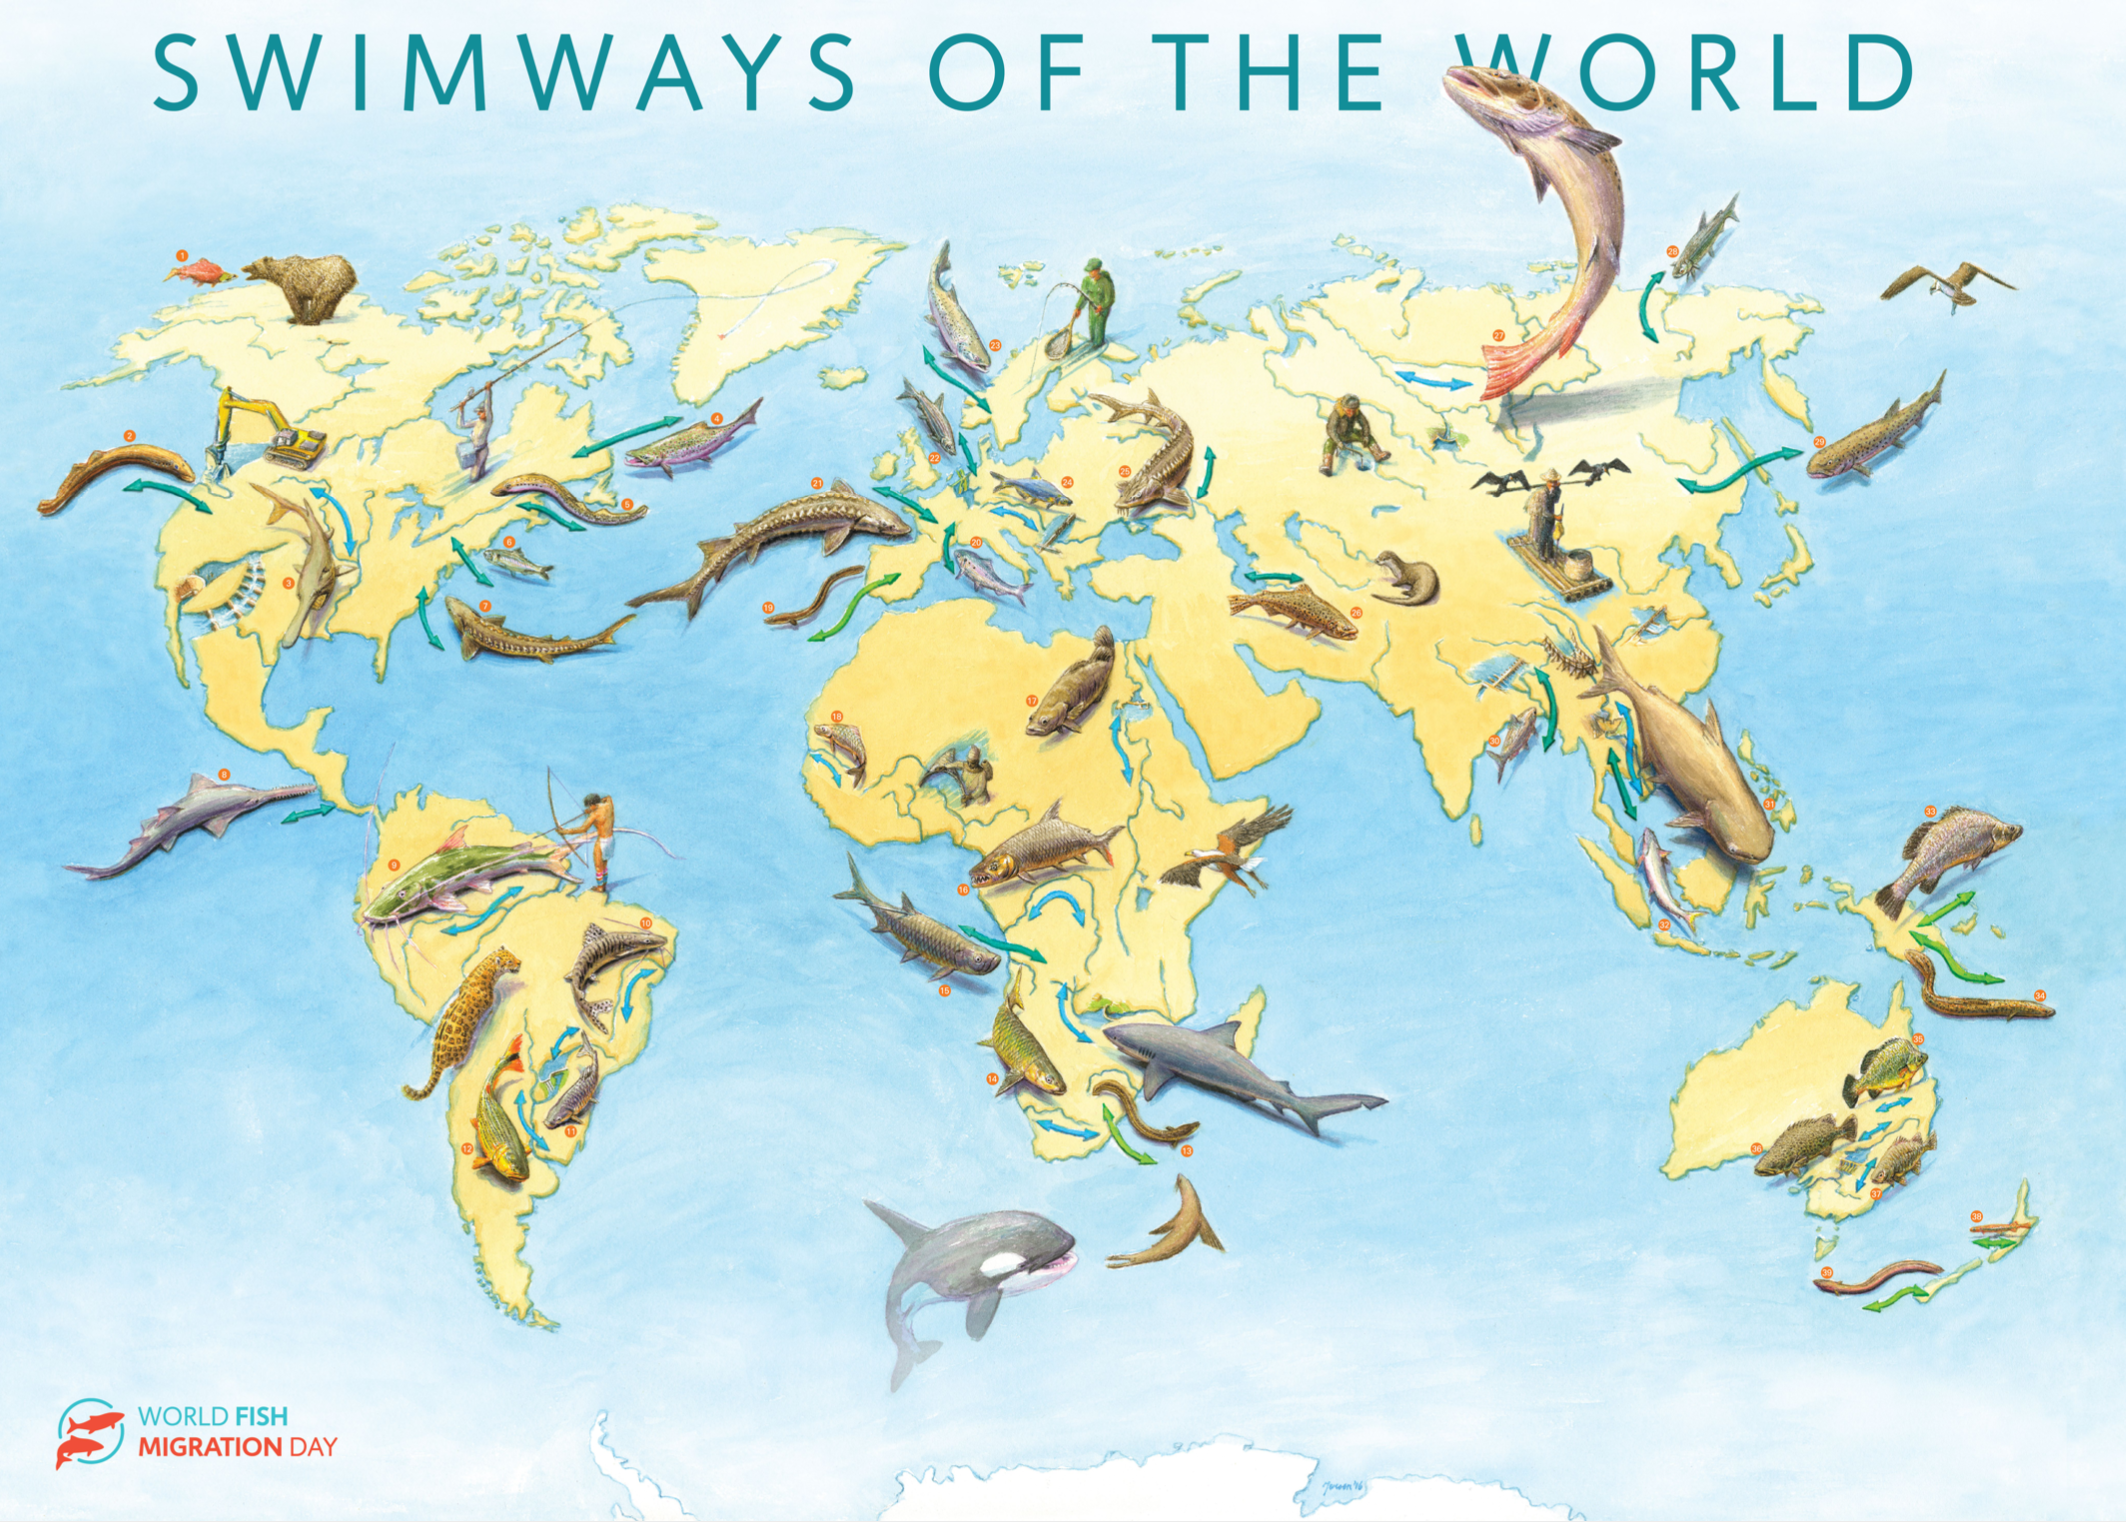 Swimways_of_the_world